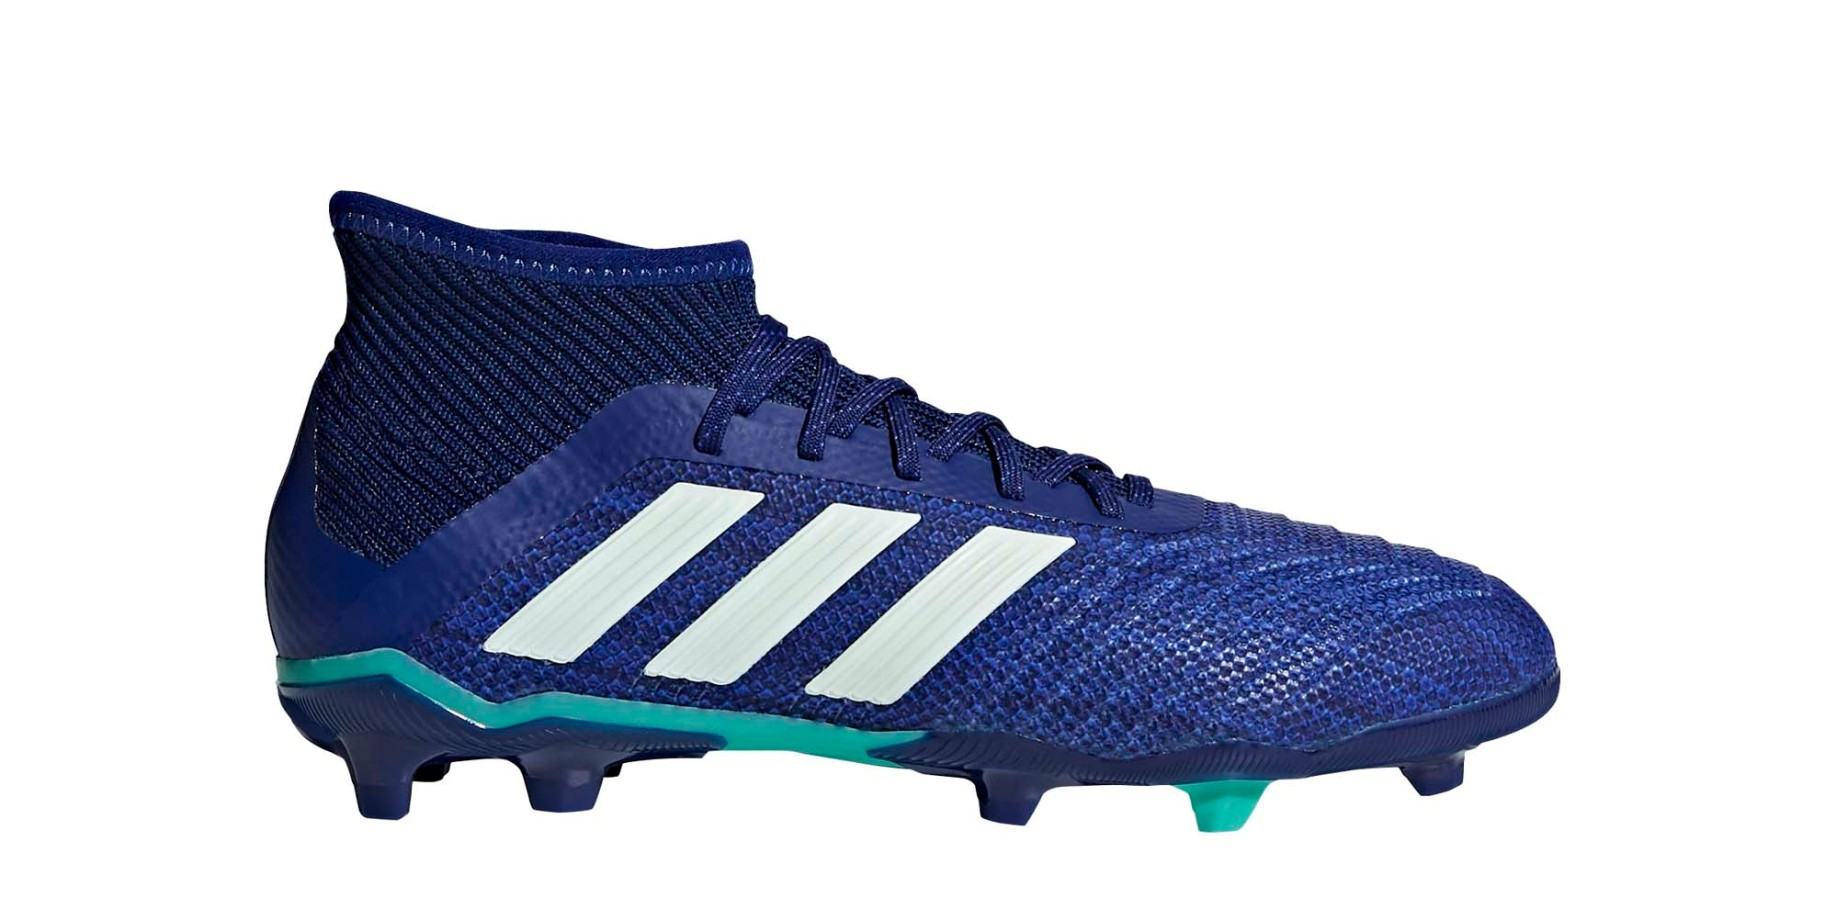 detailed look 36ee4 6cce3 Football boots Adidas Predator 18.1 FG Deadly Strike Pack colore Blue Light  blue - Adidas - SportIT.com